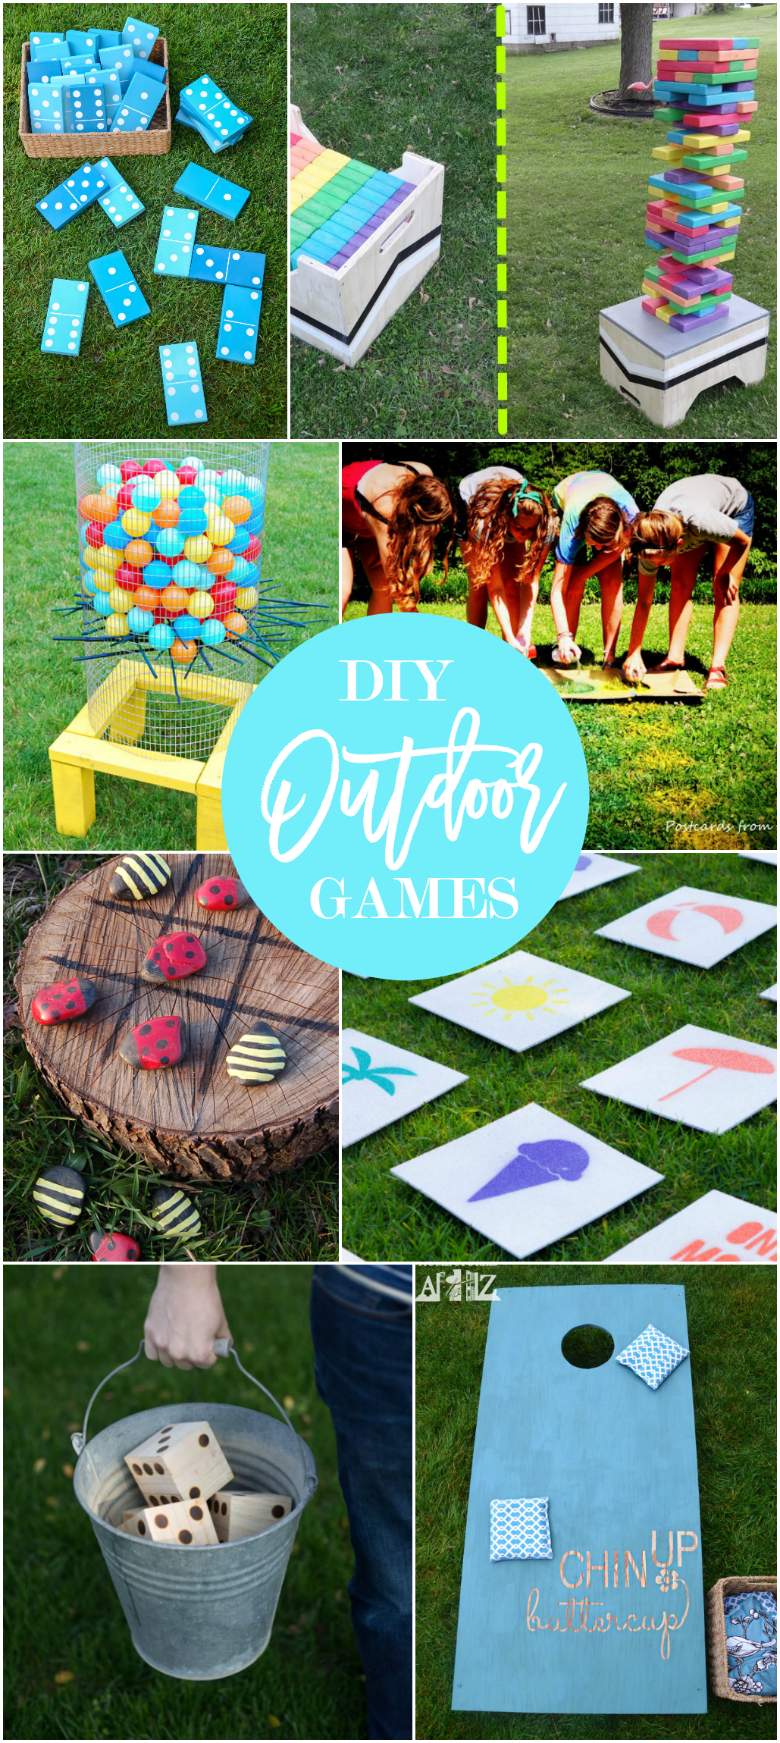 17 DIY Games for Outdoor Family Fun - Home Stories A to Z